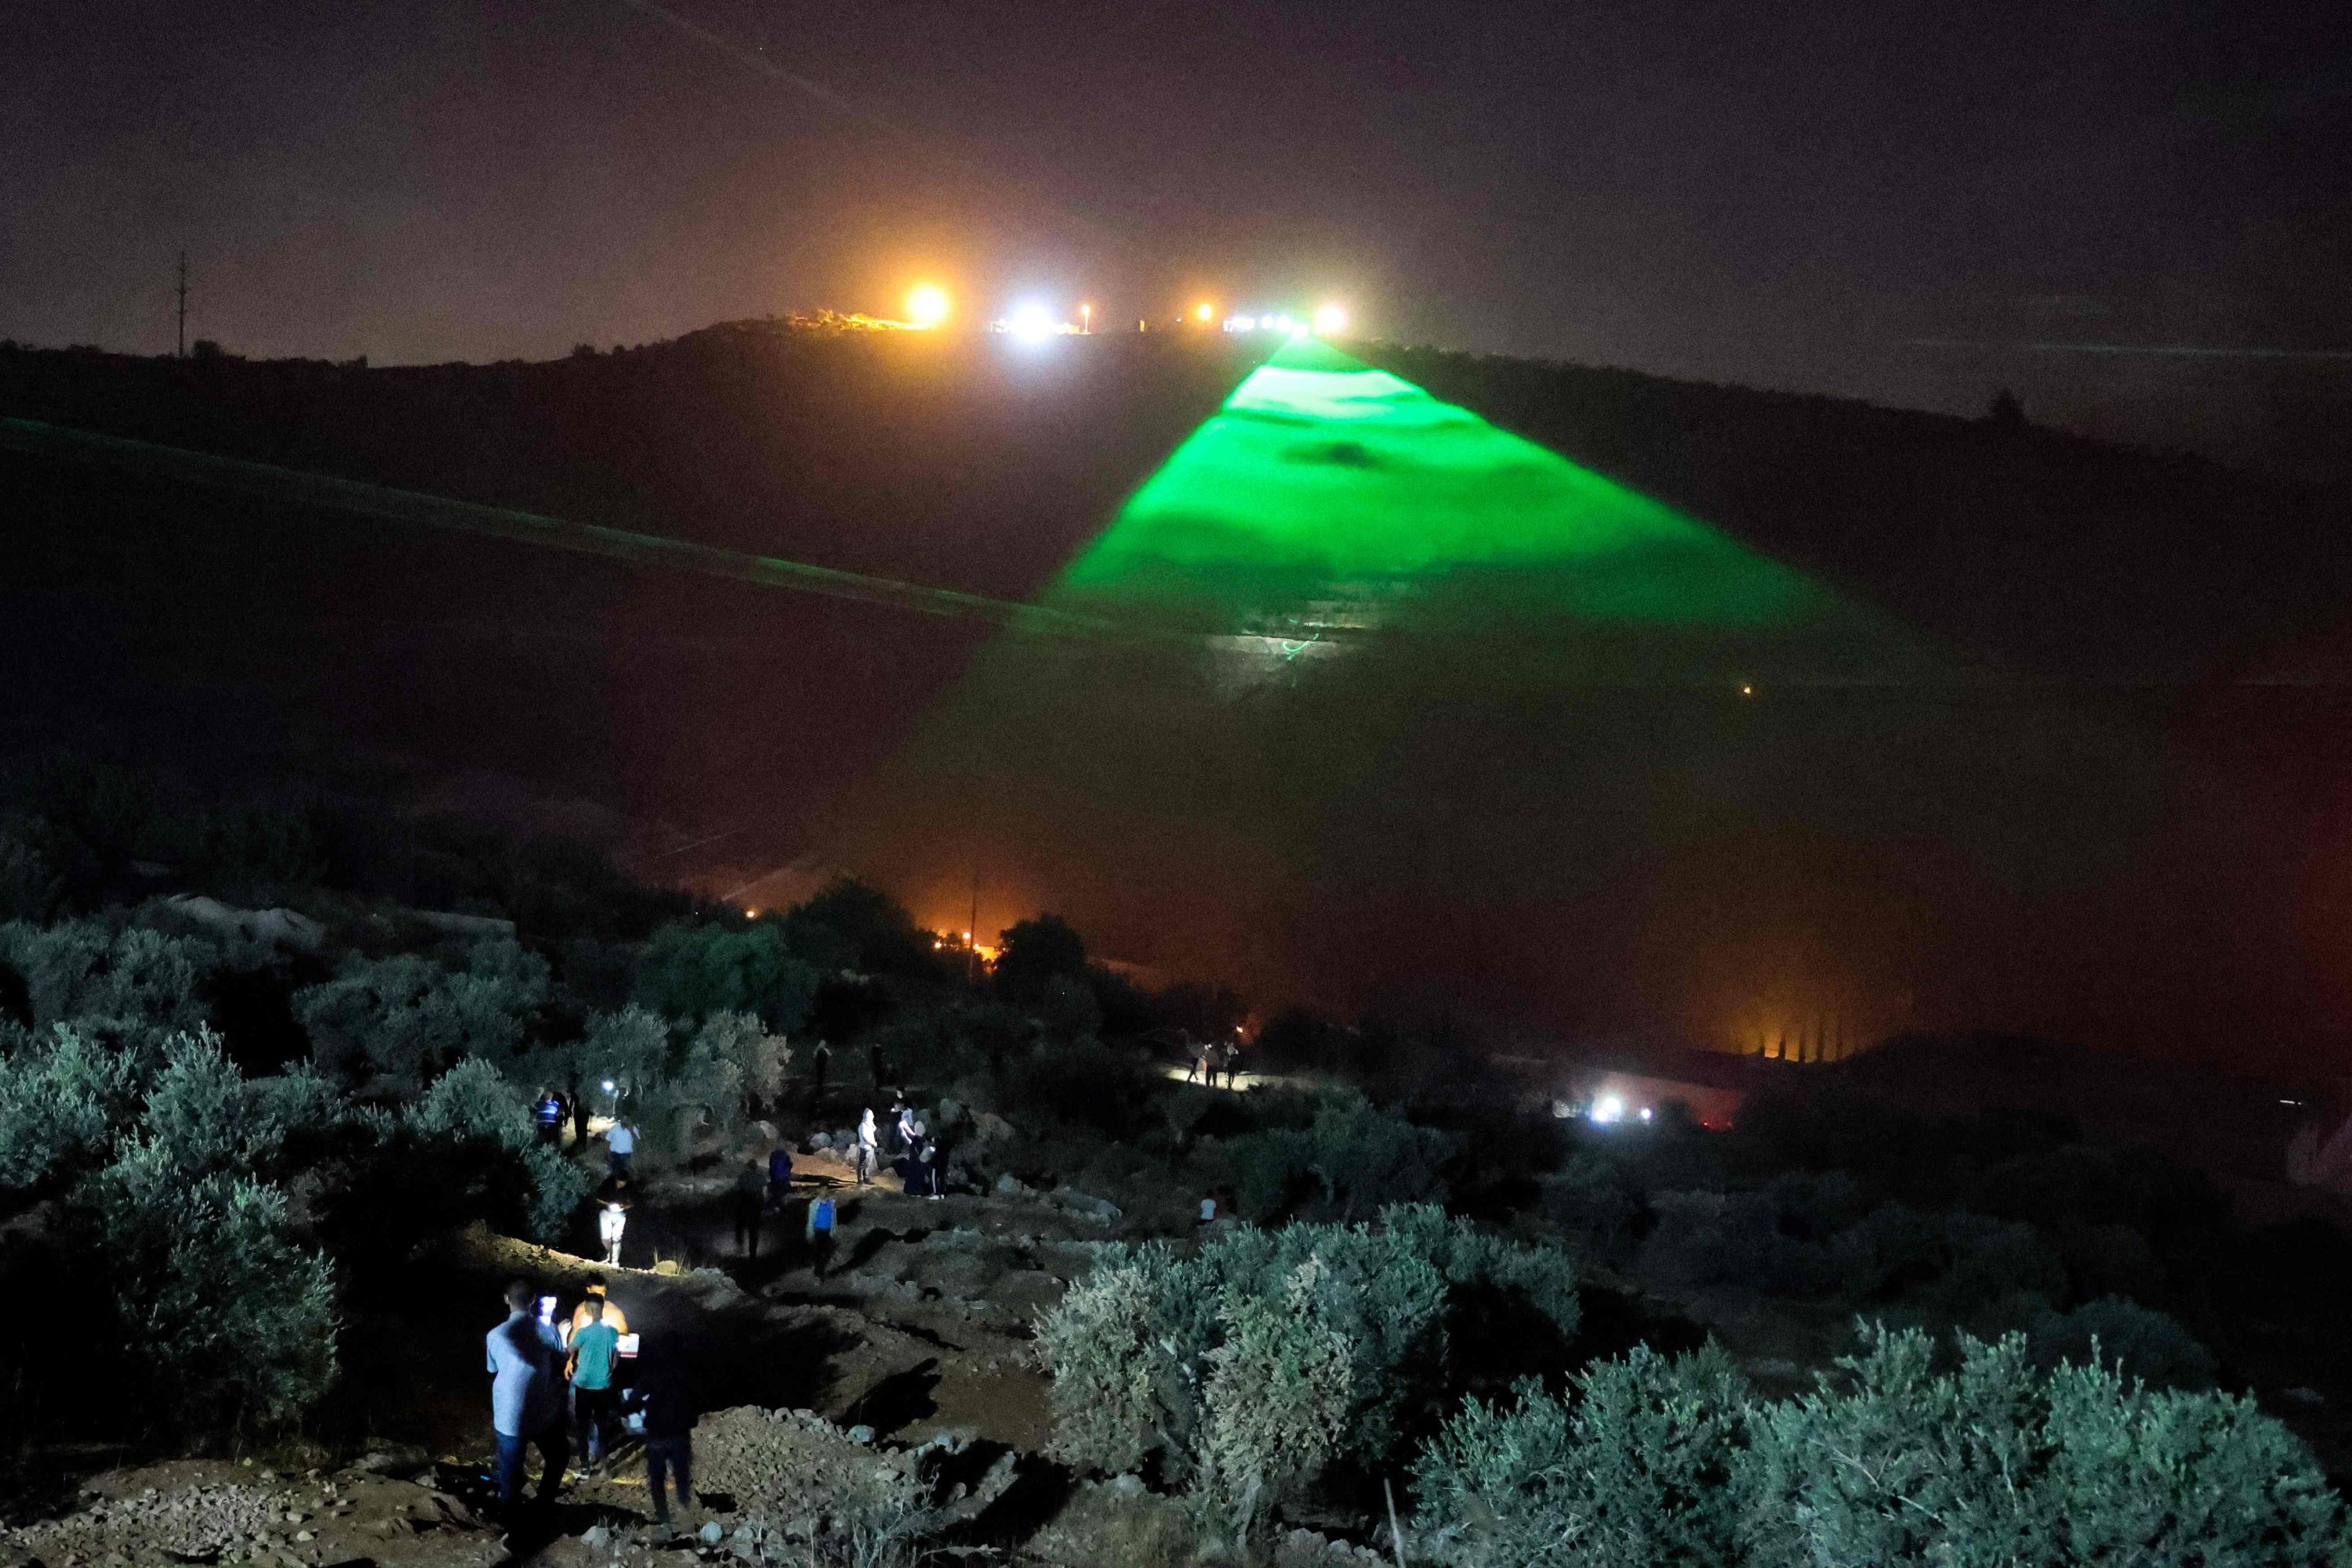 Palestinian protesters use laser torches during a demonstration against the Israeli settlers' outpost of Eviatar,  in the town of Beita, occupied West Bank, Palestine, June 30, 2021. (AFP Photo)